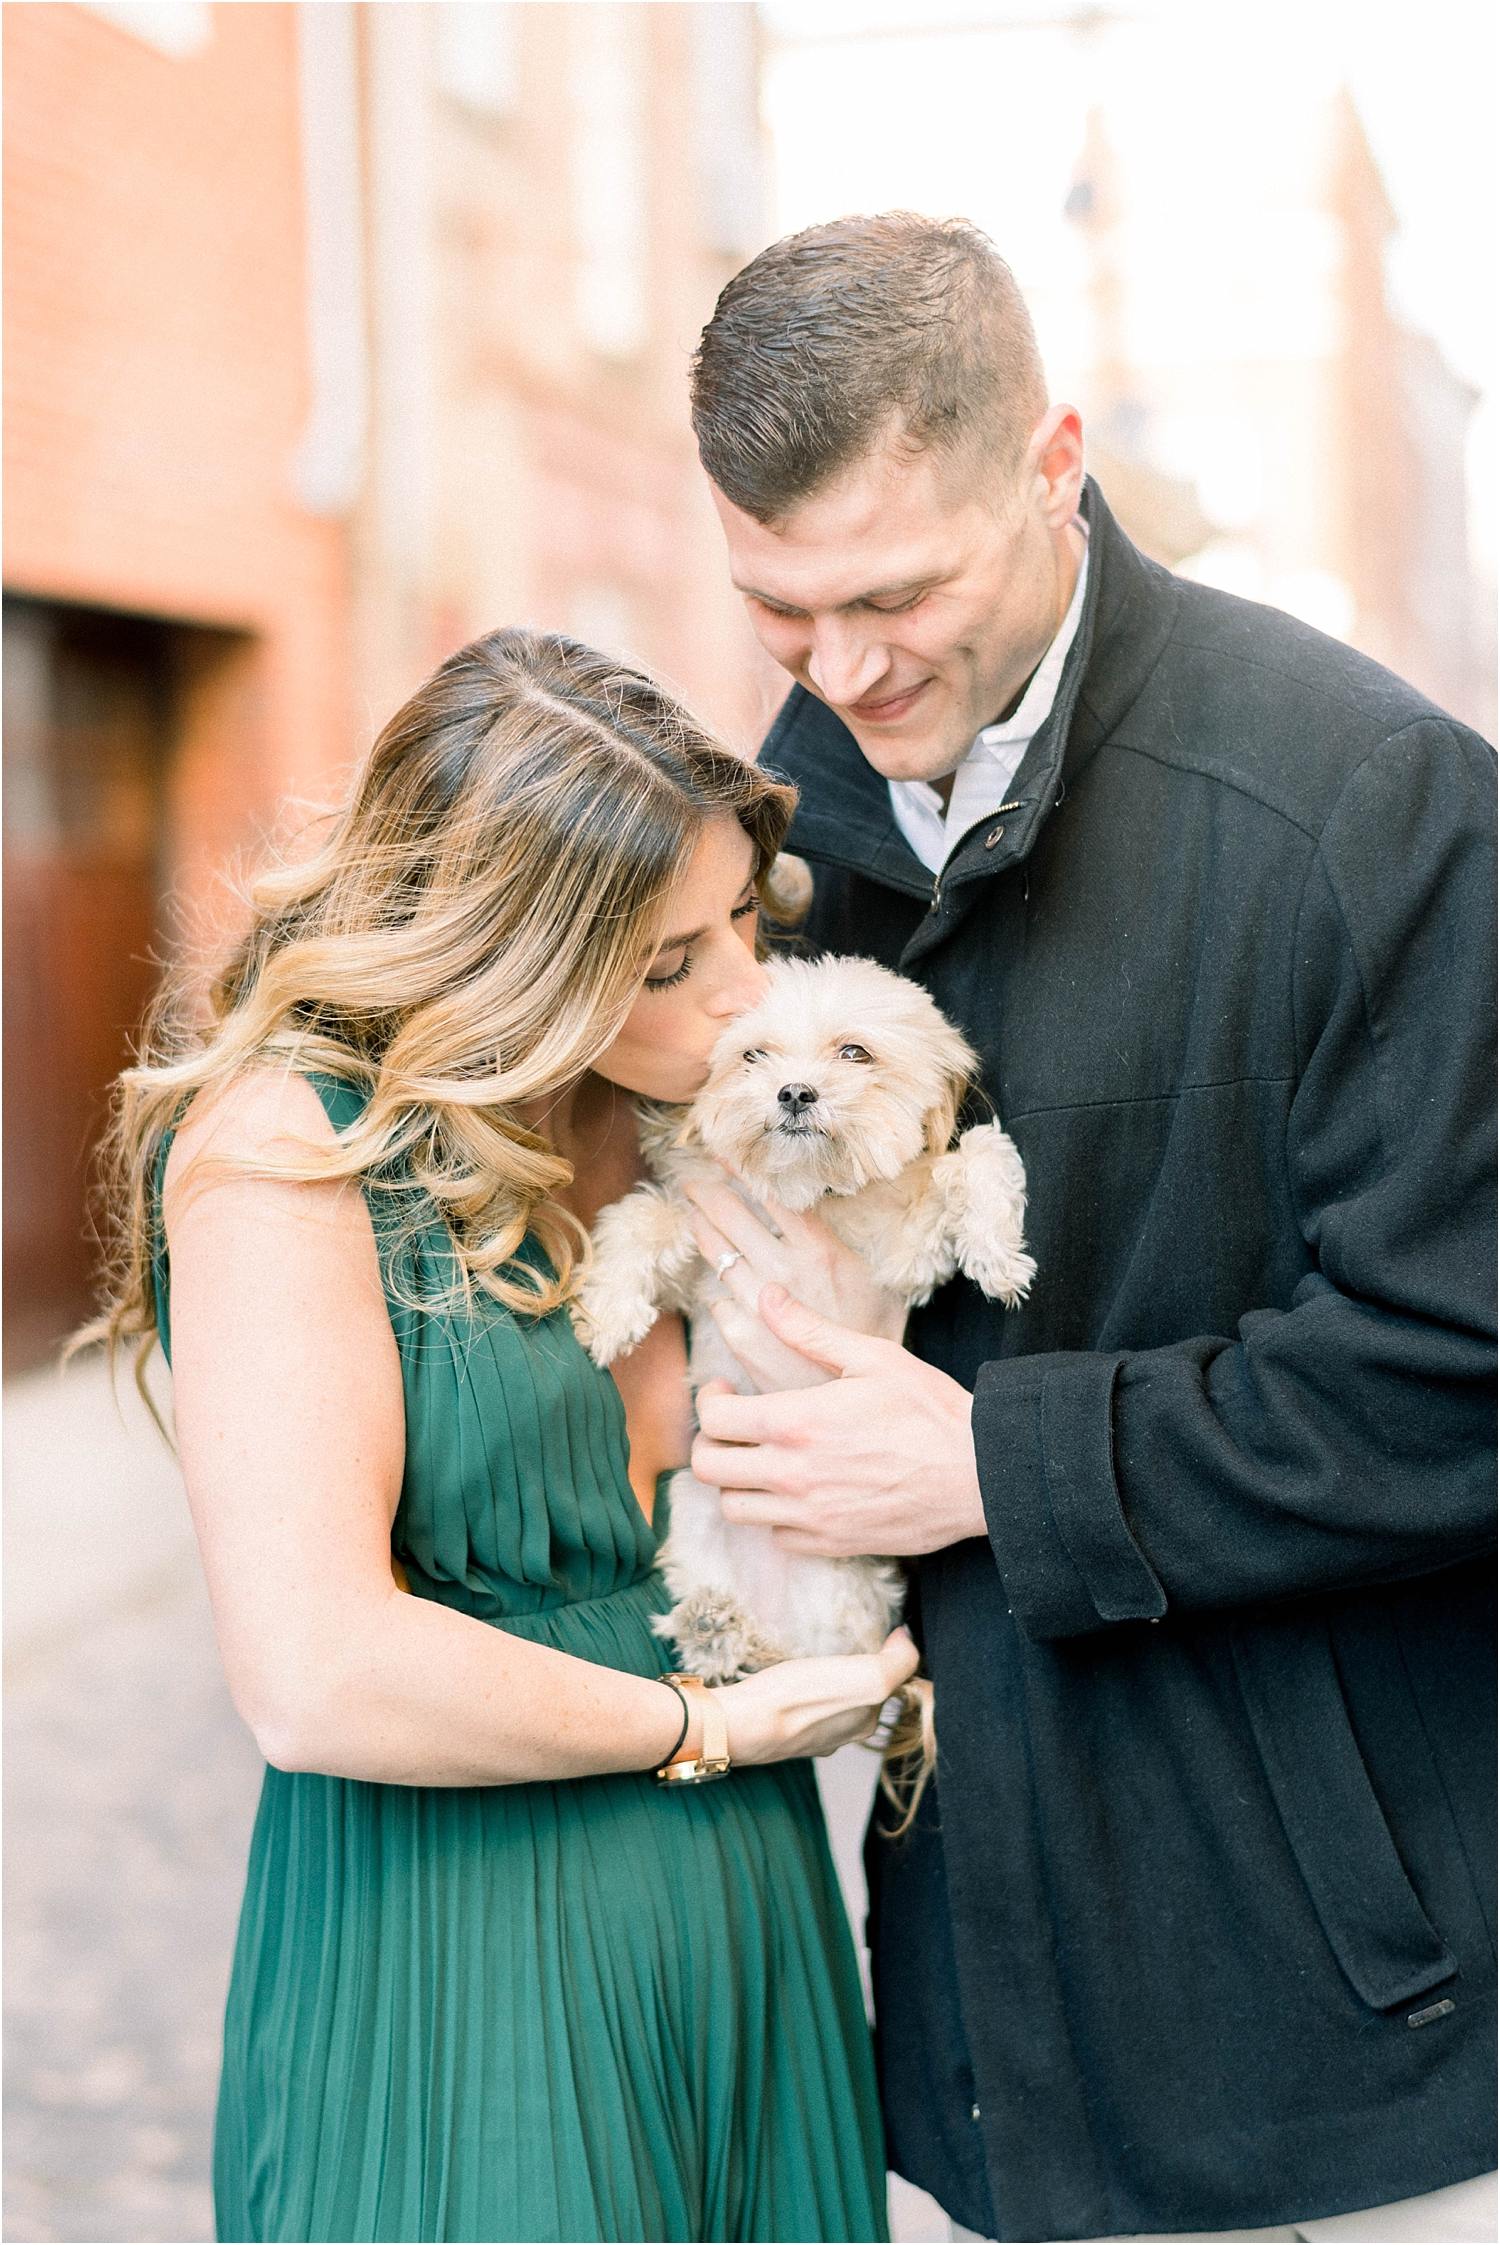 hoboken engagement session nj wedding photographer_0011.jpg